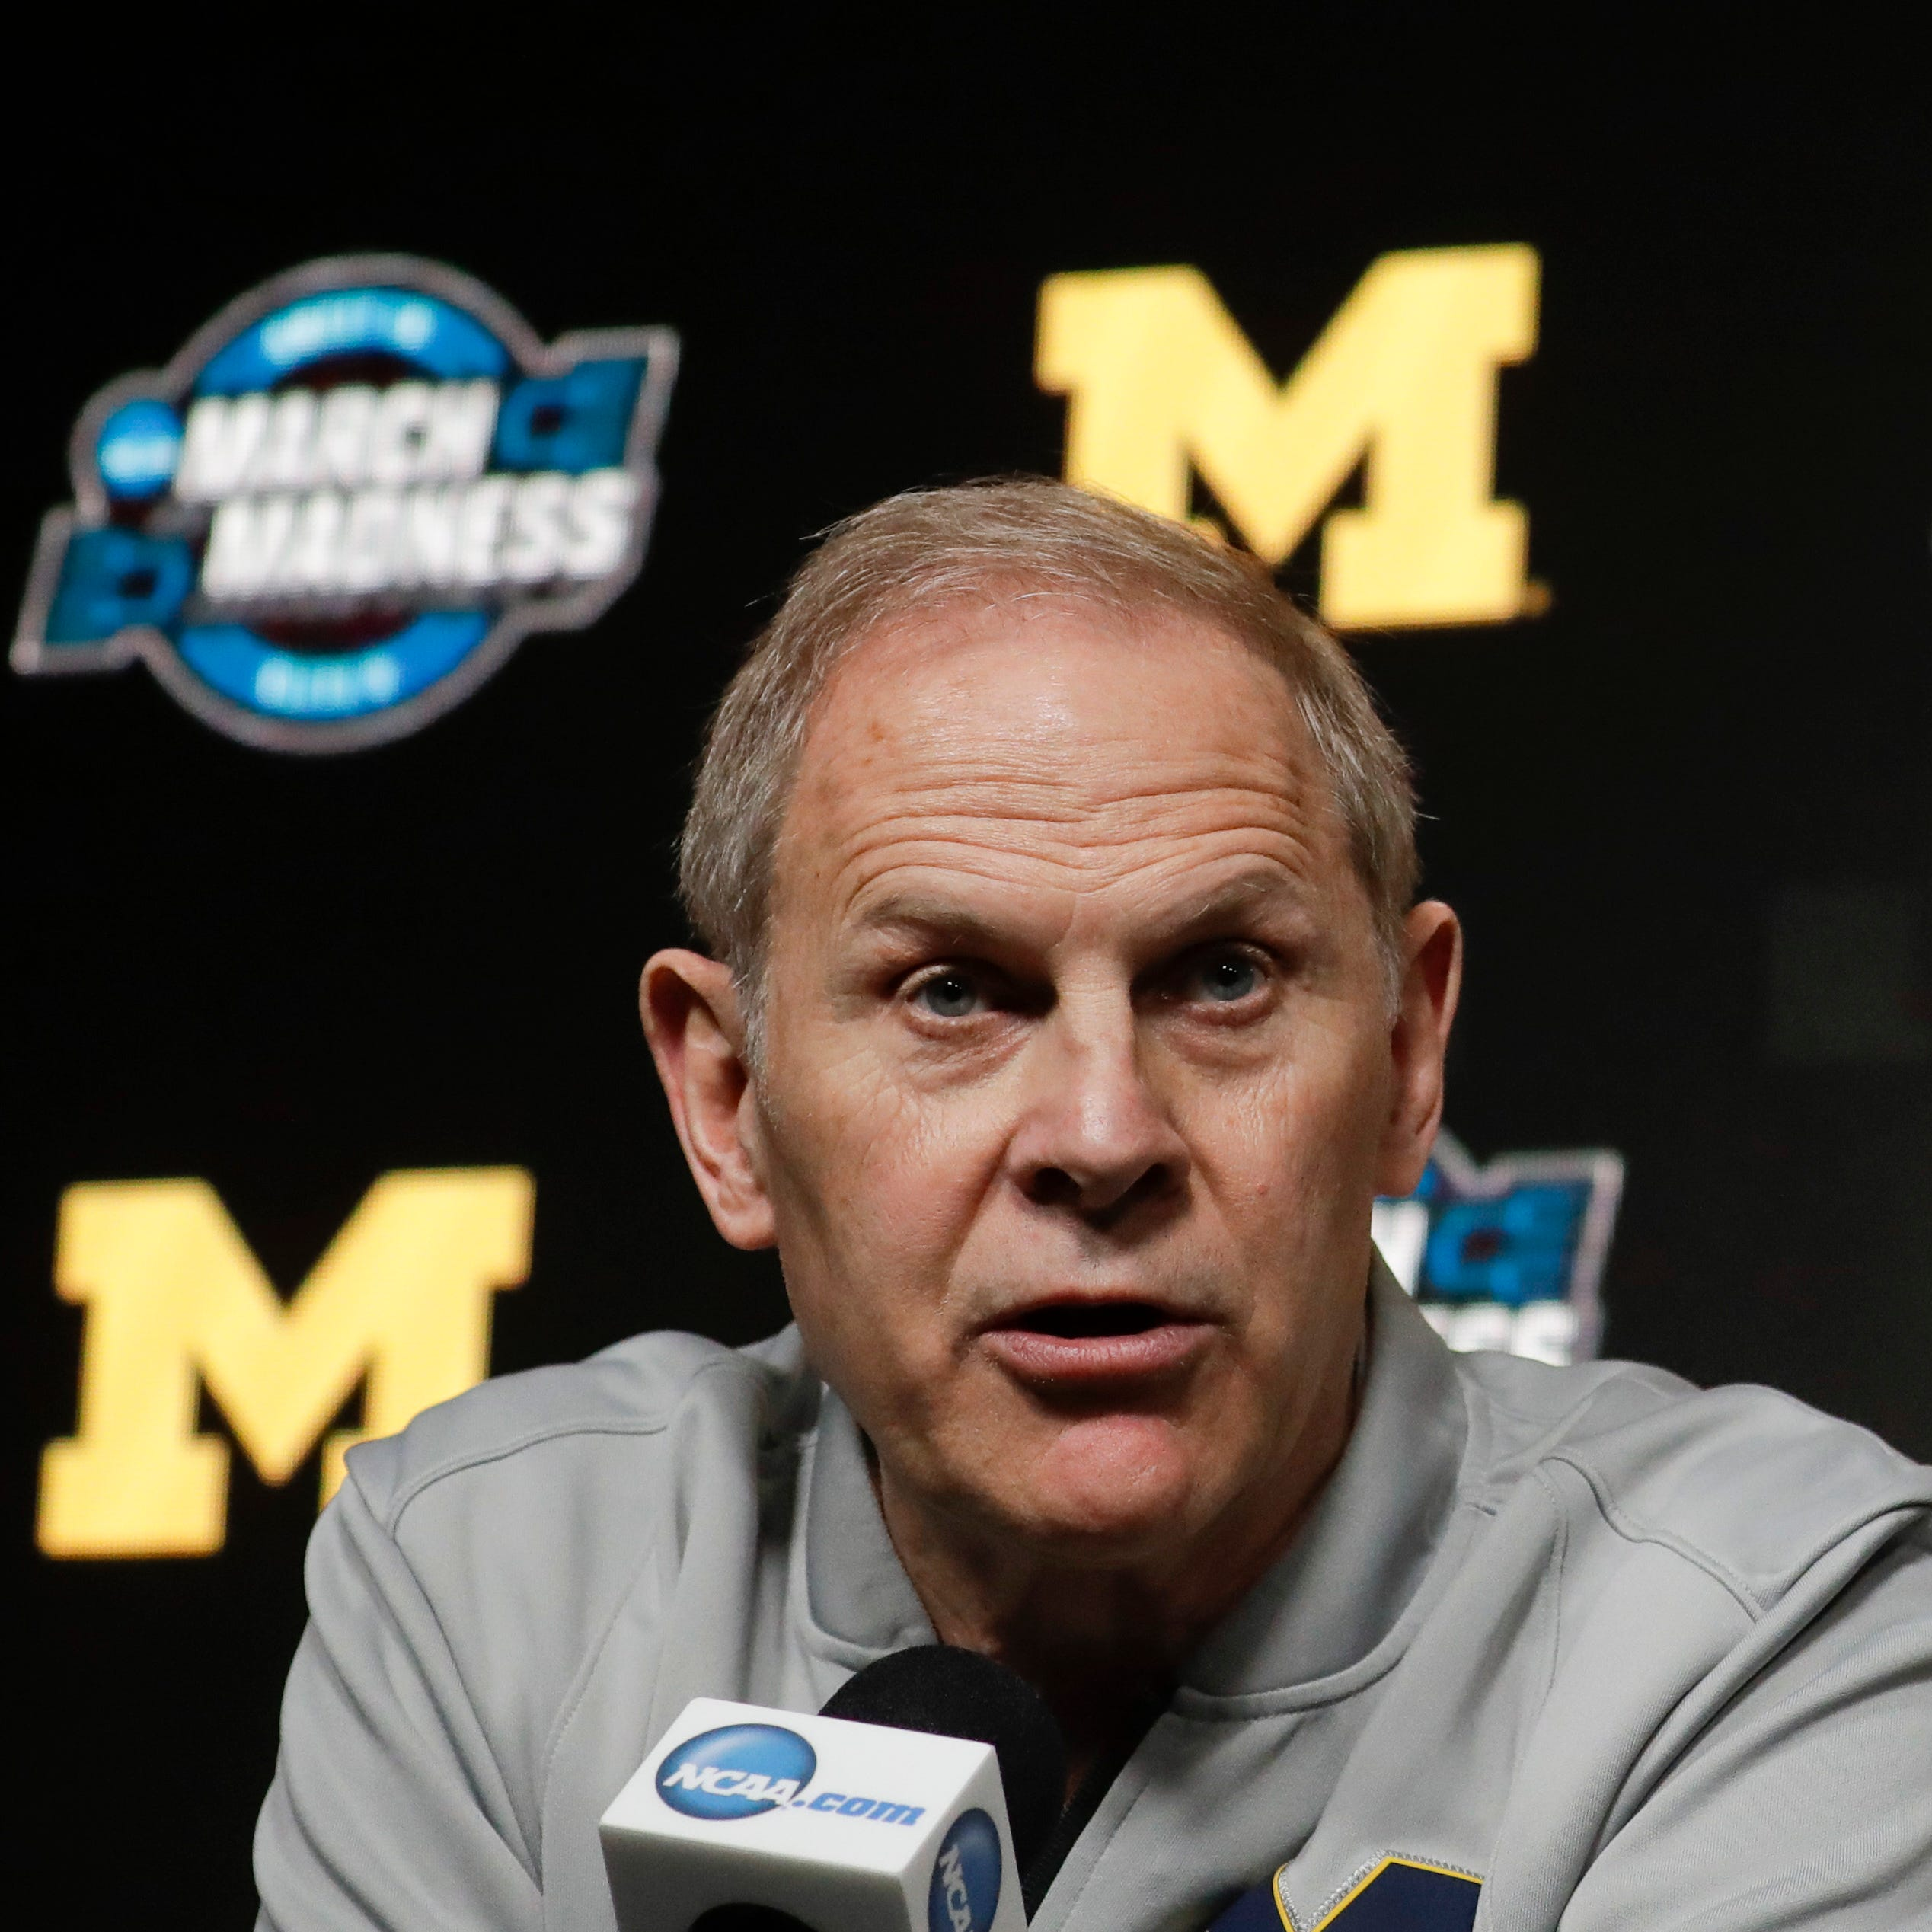 Michigan basketball coach John Beilein to take Cleveland Cavaliers job